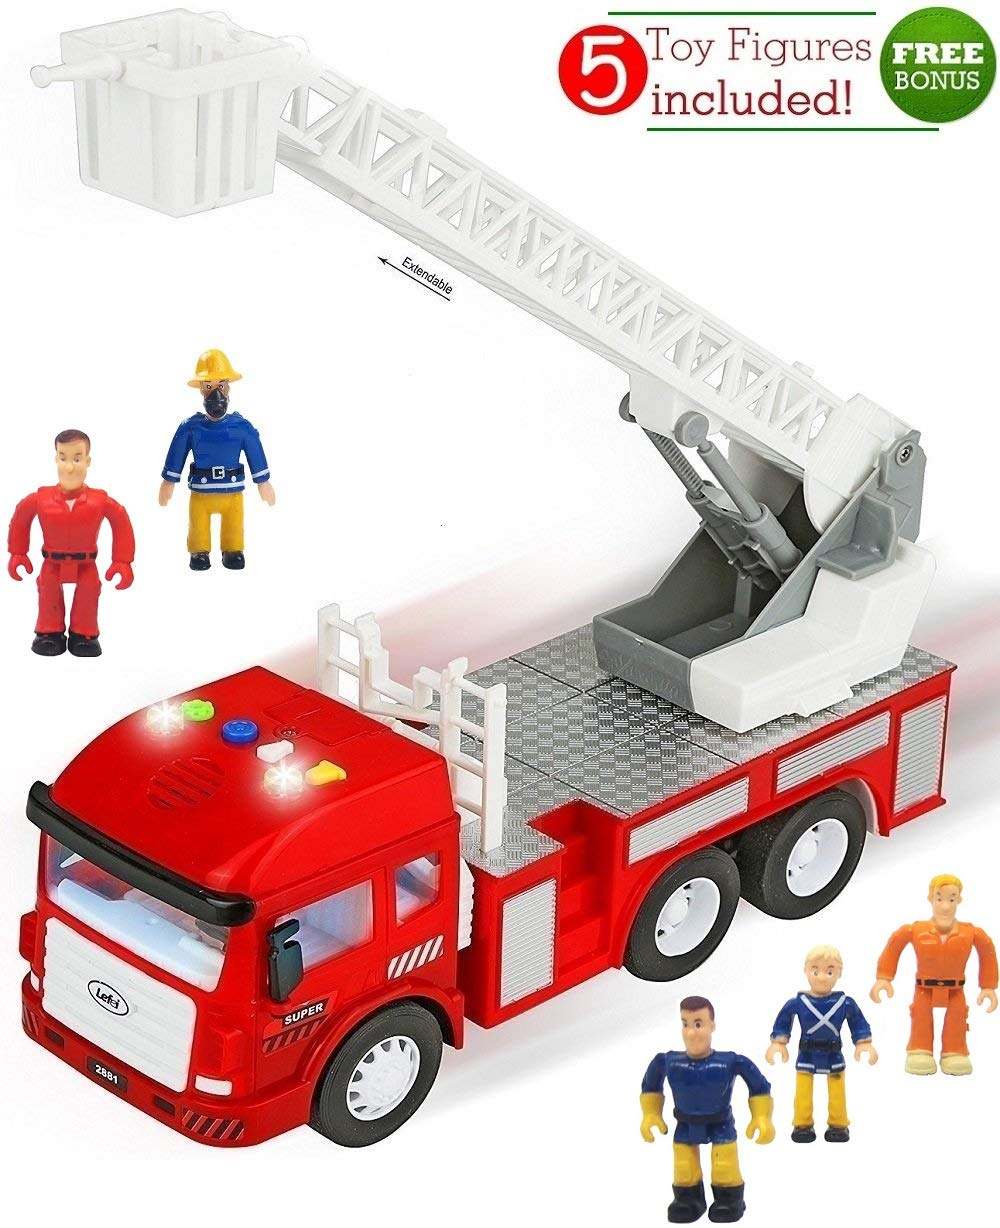 FUNERICA Toy Fire Truck with Lights and Sounds – 4 Sirens – Extending Ladder – Powerful Friction Rolling – Firetruck Fire Engine for Toddlers & Kids